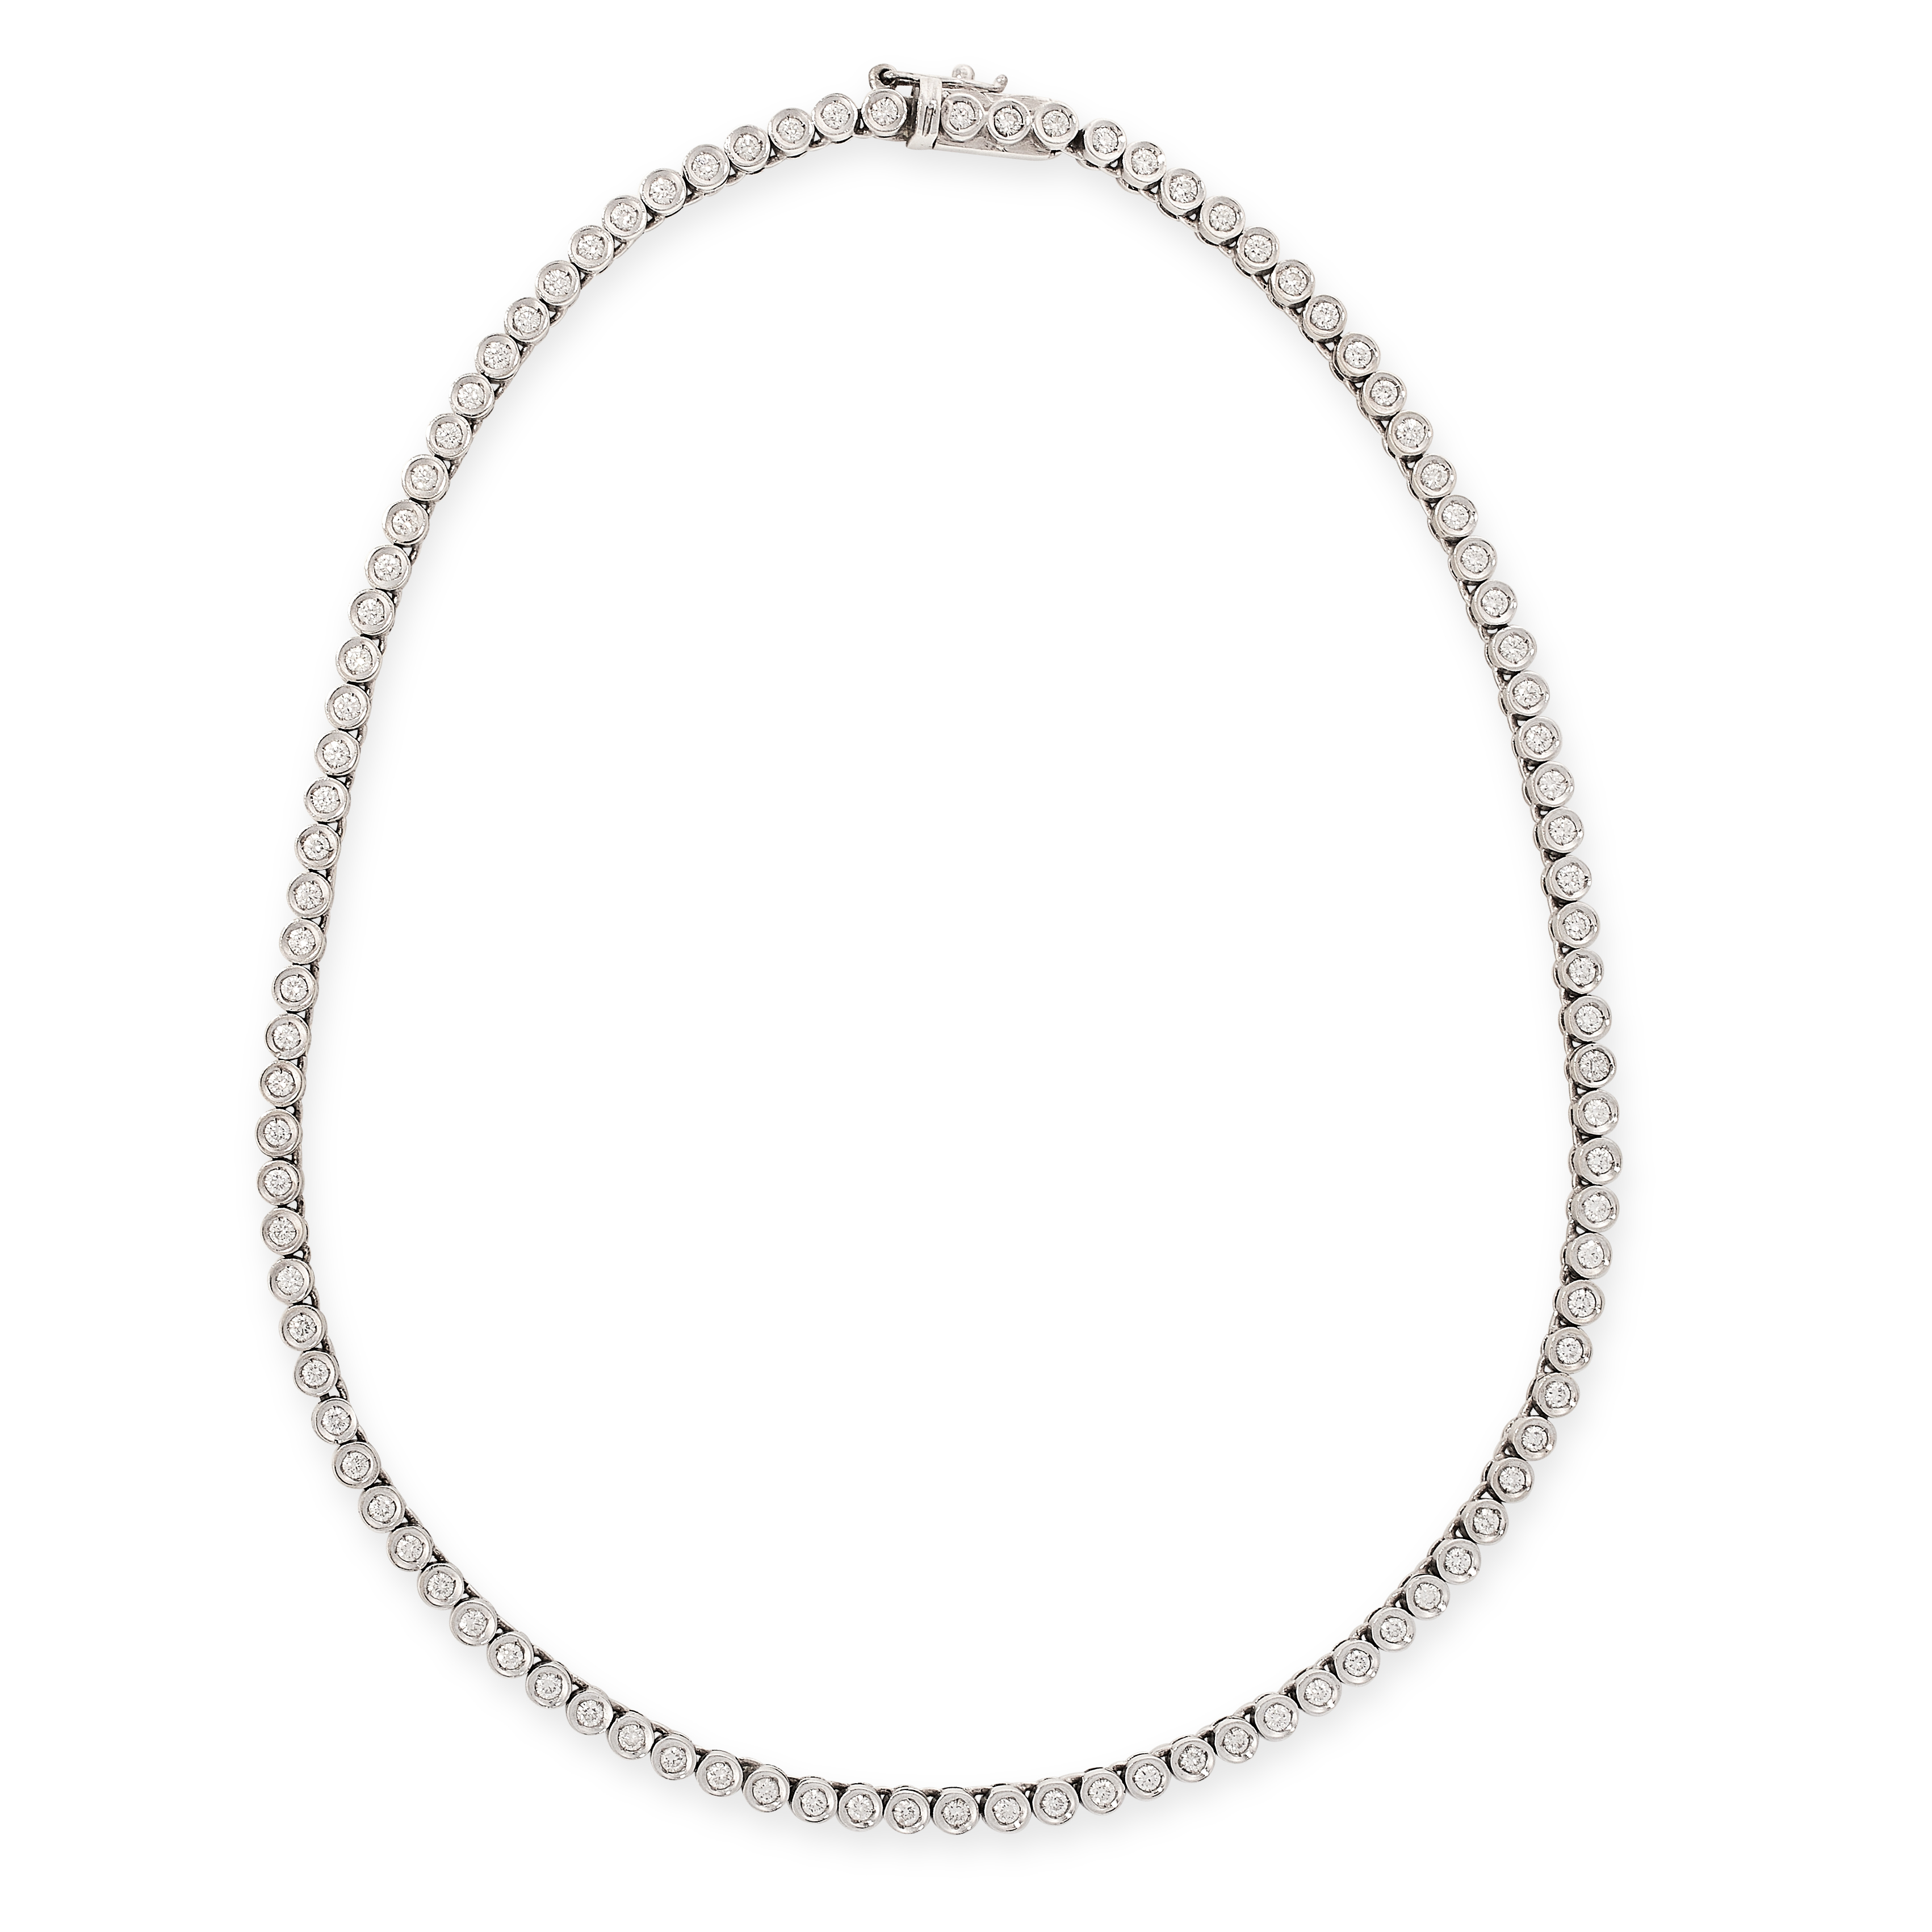 A DIAMOND LINE NECKLACE in 18ct white gold, comprising of a single row of round cut diamonds, the